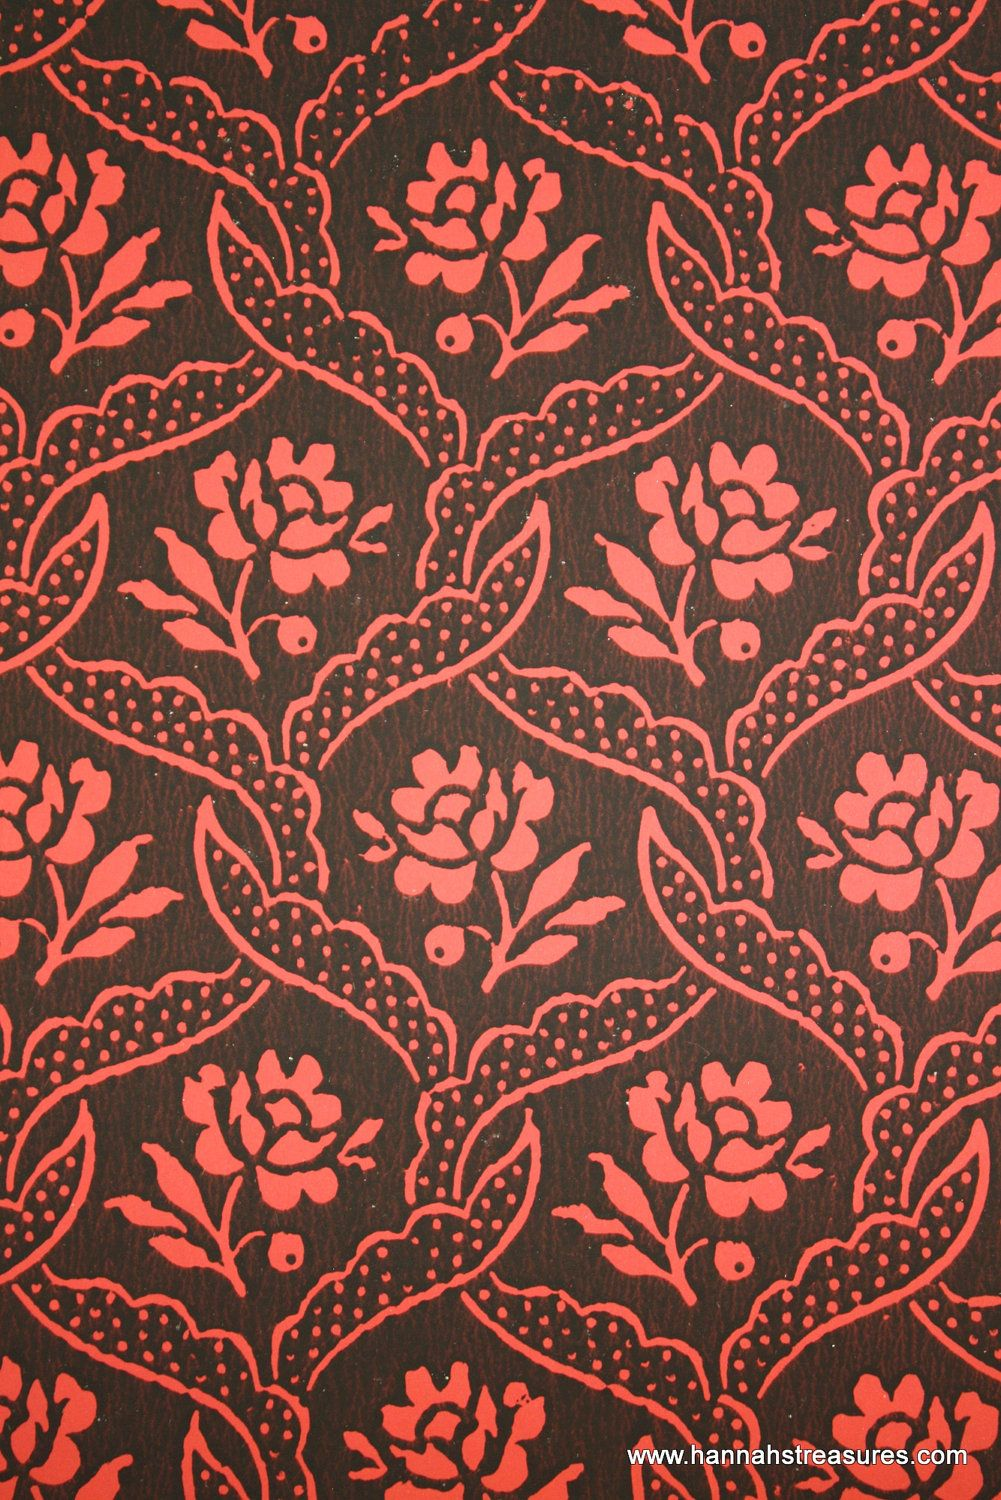 1940 S Vintage Wallpaper Black Lacy Lattice With Red Flowers Vintage Wallpaper Vintage Flowers Wallpaper Damask Pattern